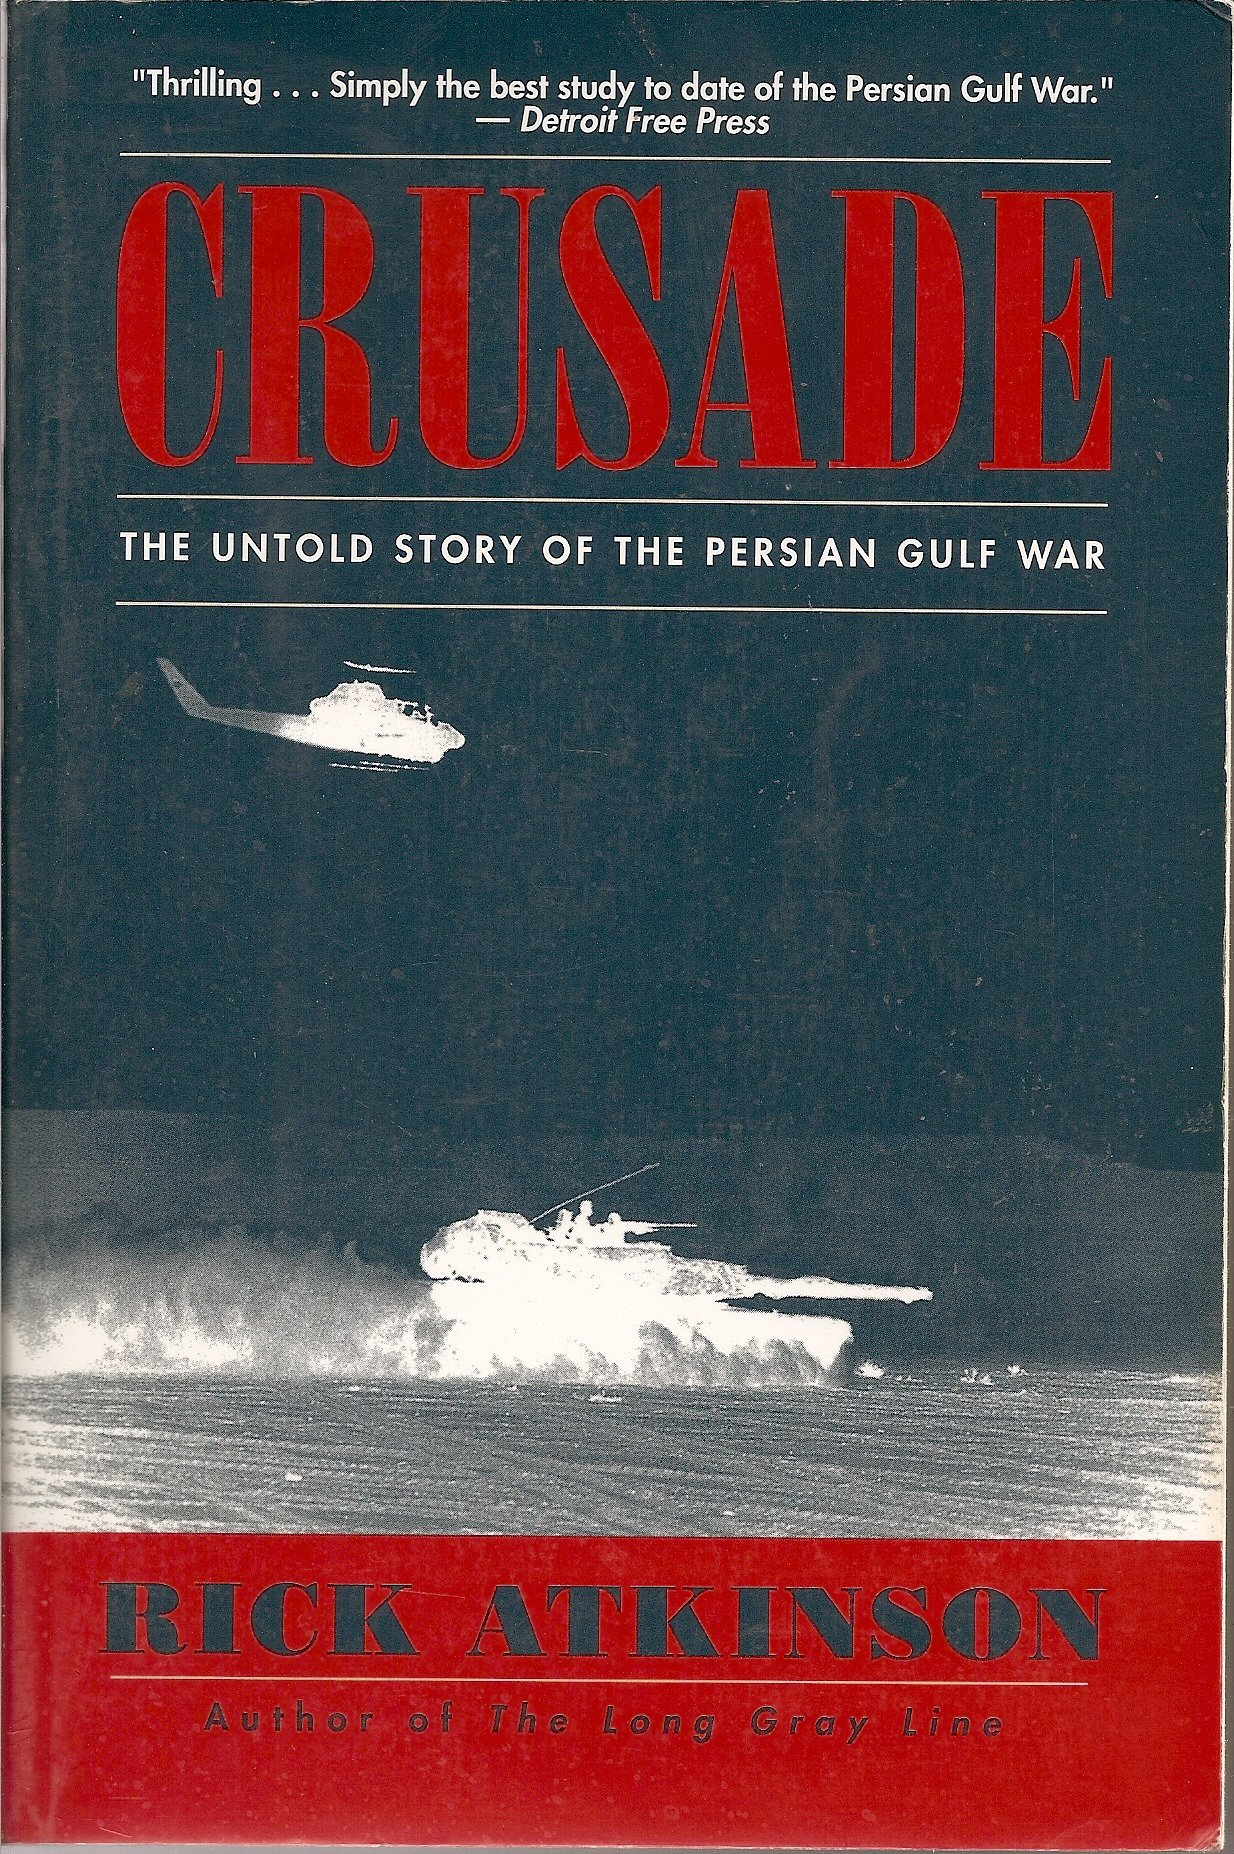 Crusade - The Untold Story Of The Persian Gulf War